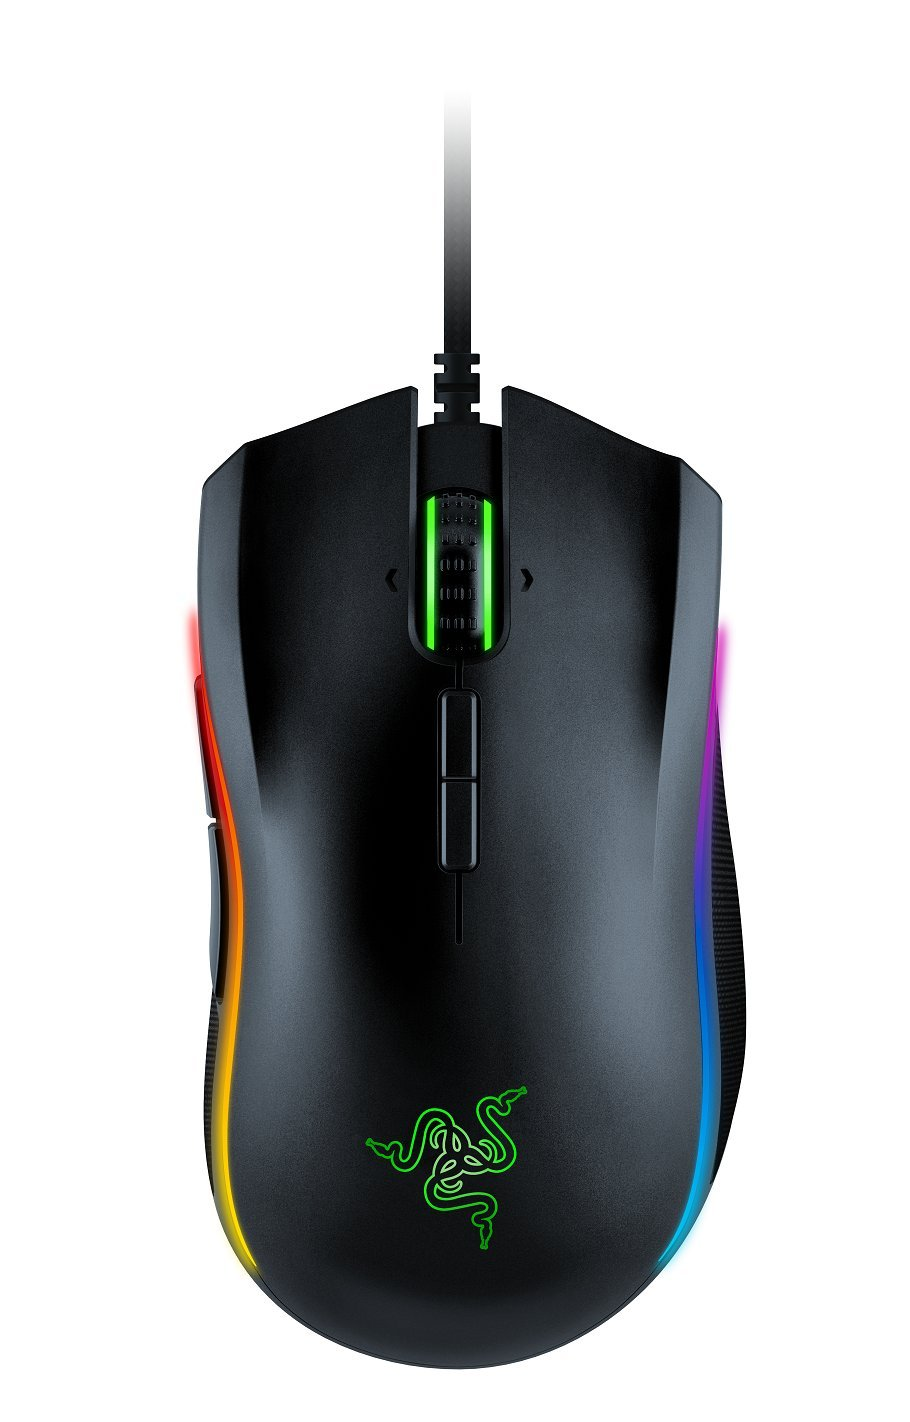 Razer Mamba Elite Wired Gaming Mouse: 16,000 DPI Optical Sensor - Chroma RGB Lighting - 9 Programmable Buttons - Mechanical Switches